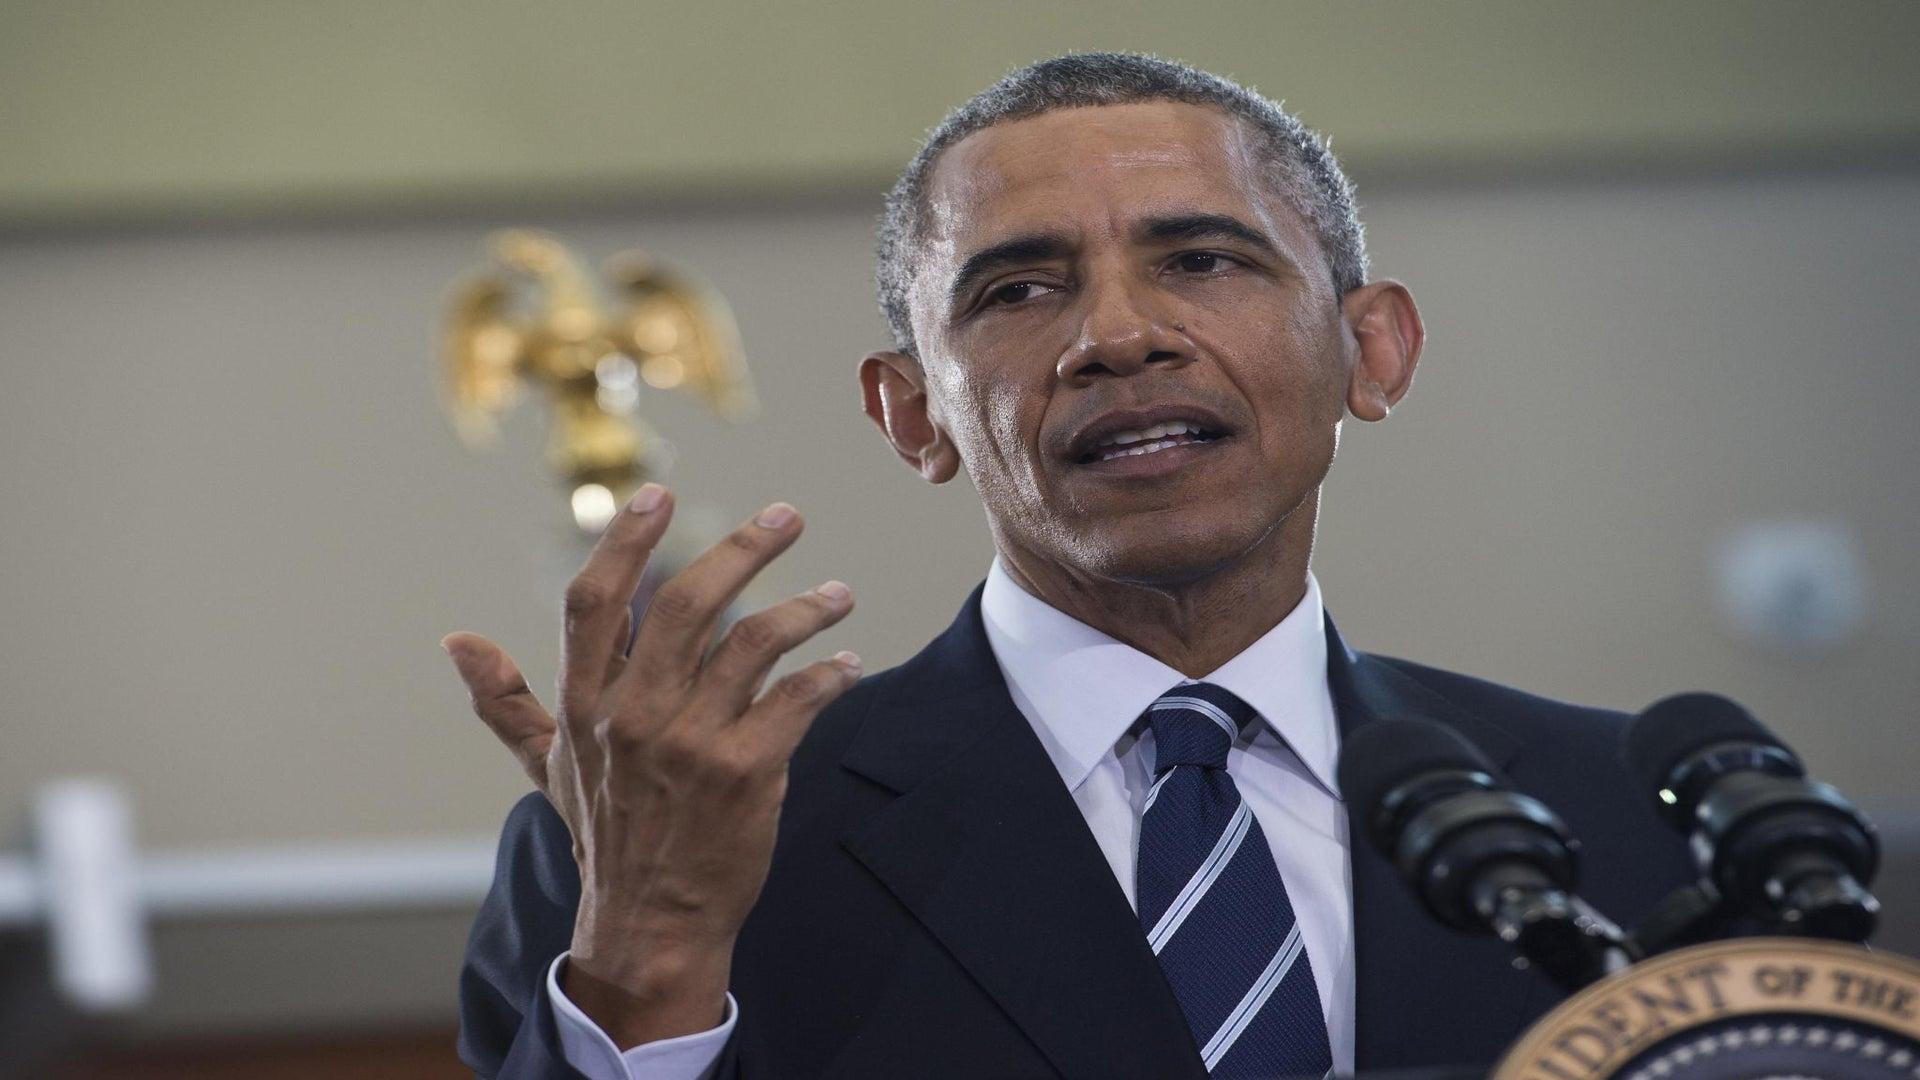 ESSENCE Poll: Do You Feel That the Black Community 'Gained Ground' During Obama's Presidency?